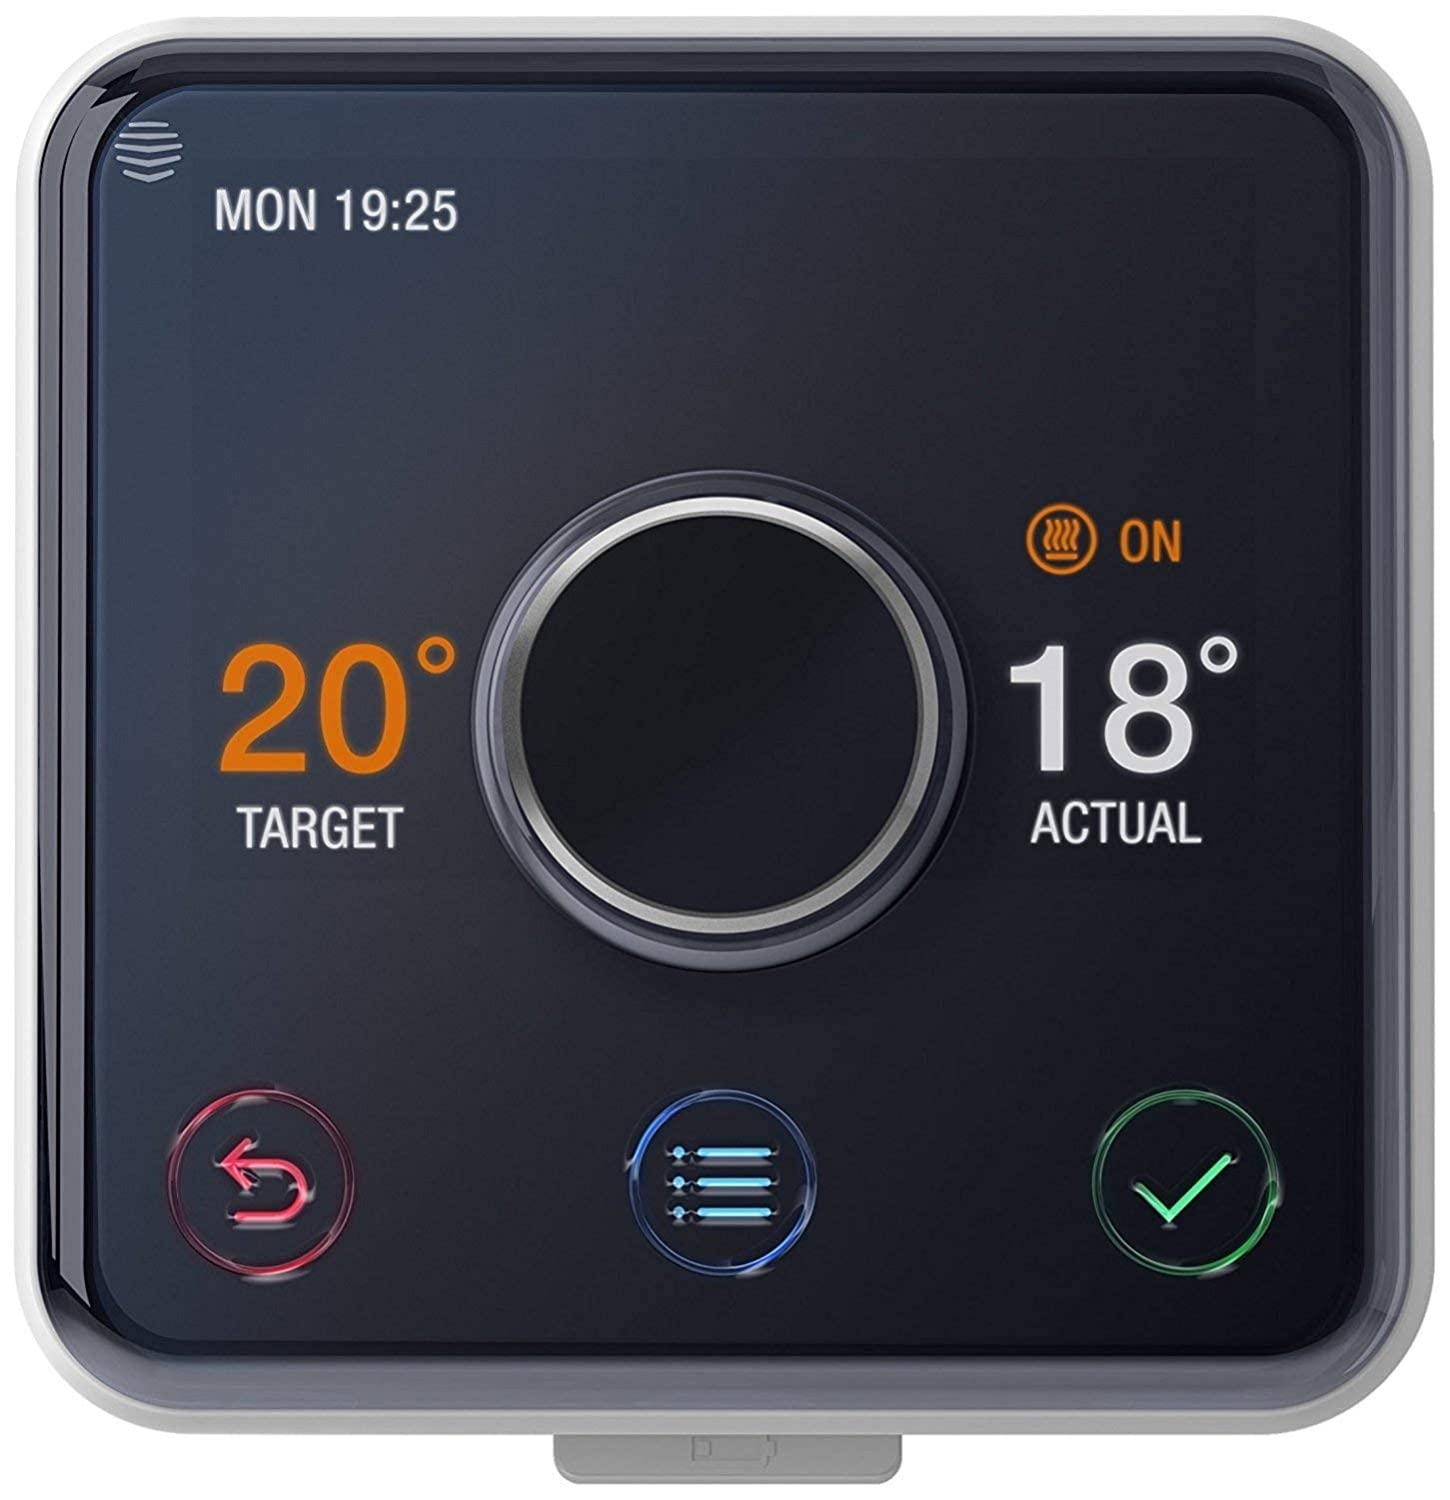 Hive Active Heating And Hot Water Thermostat Without Professional Wiring Diagram Installation Works With Amazon Alexa Diy Tools